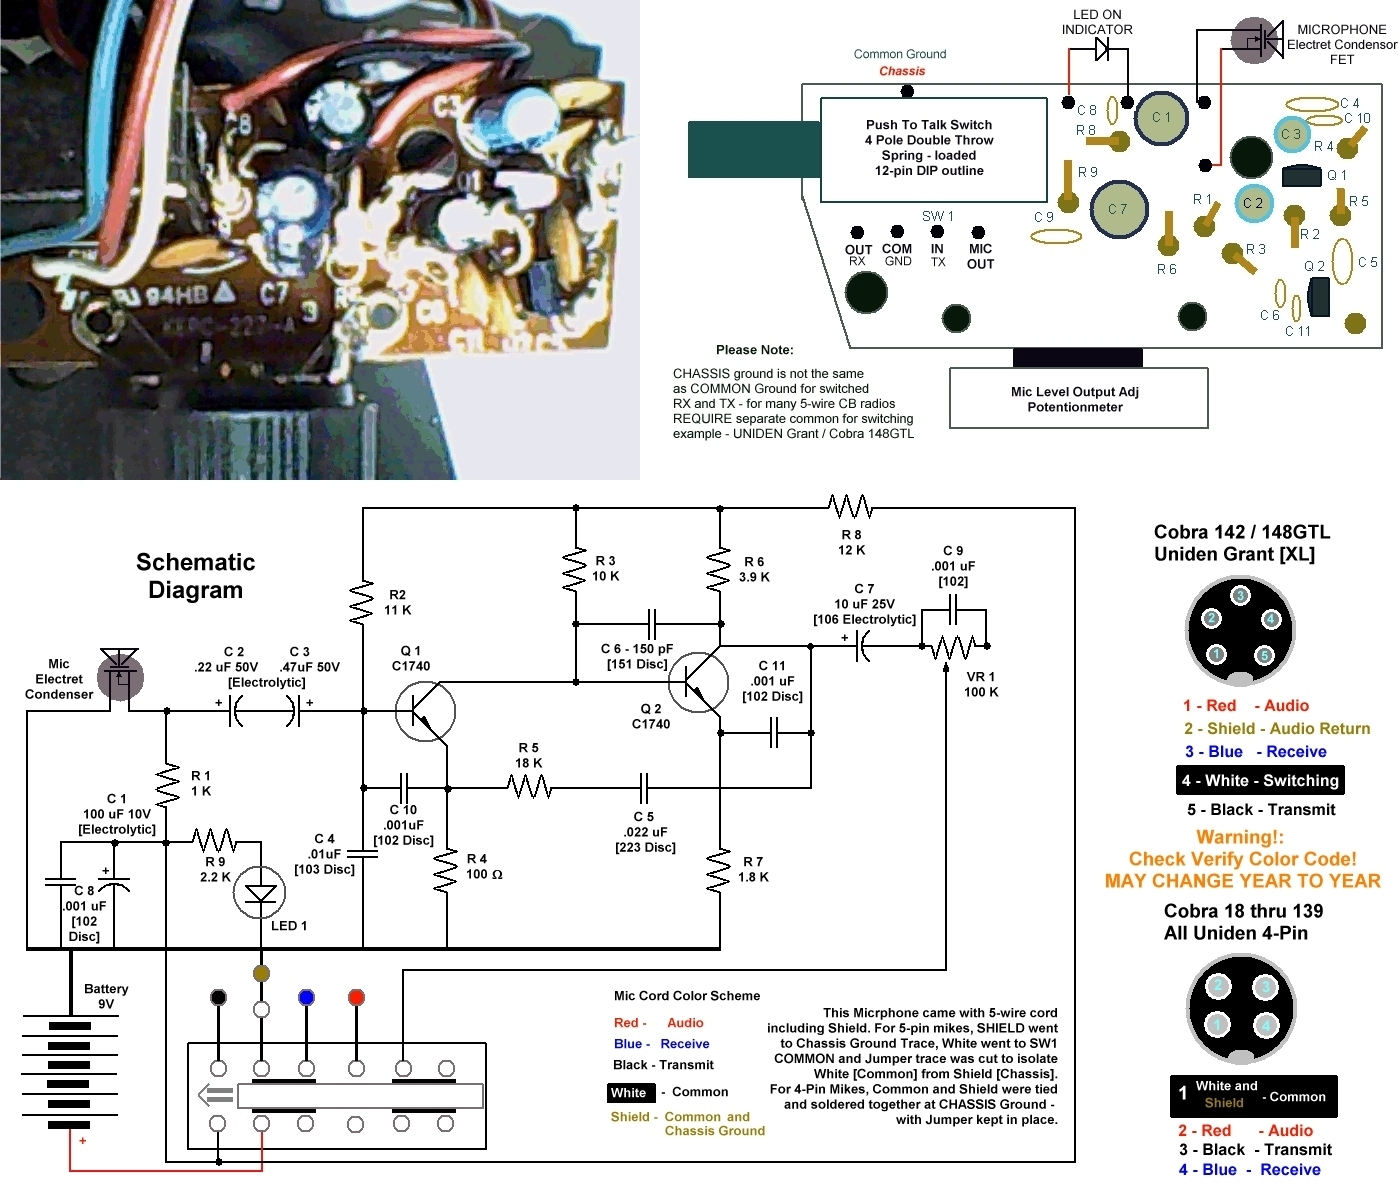 Cb Radio Microphone Wiring Diagram Outputs Library Moreover 7 Pin Din Connector On Xlr The Big Graphic I Warned You About Previously